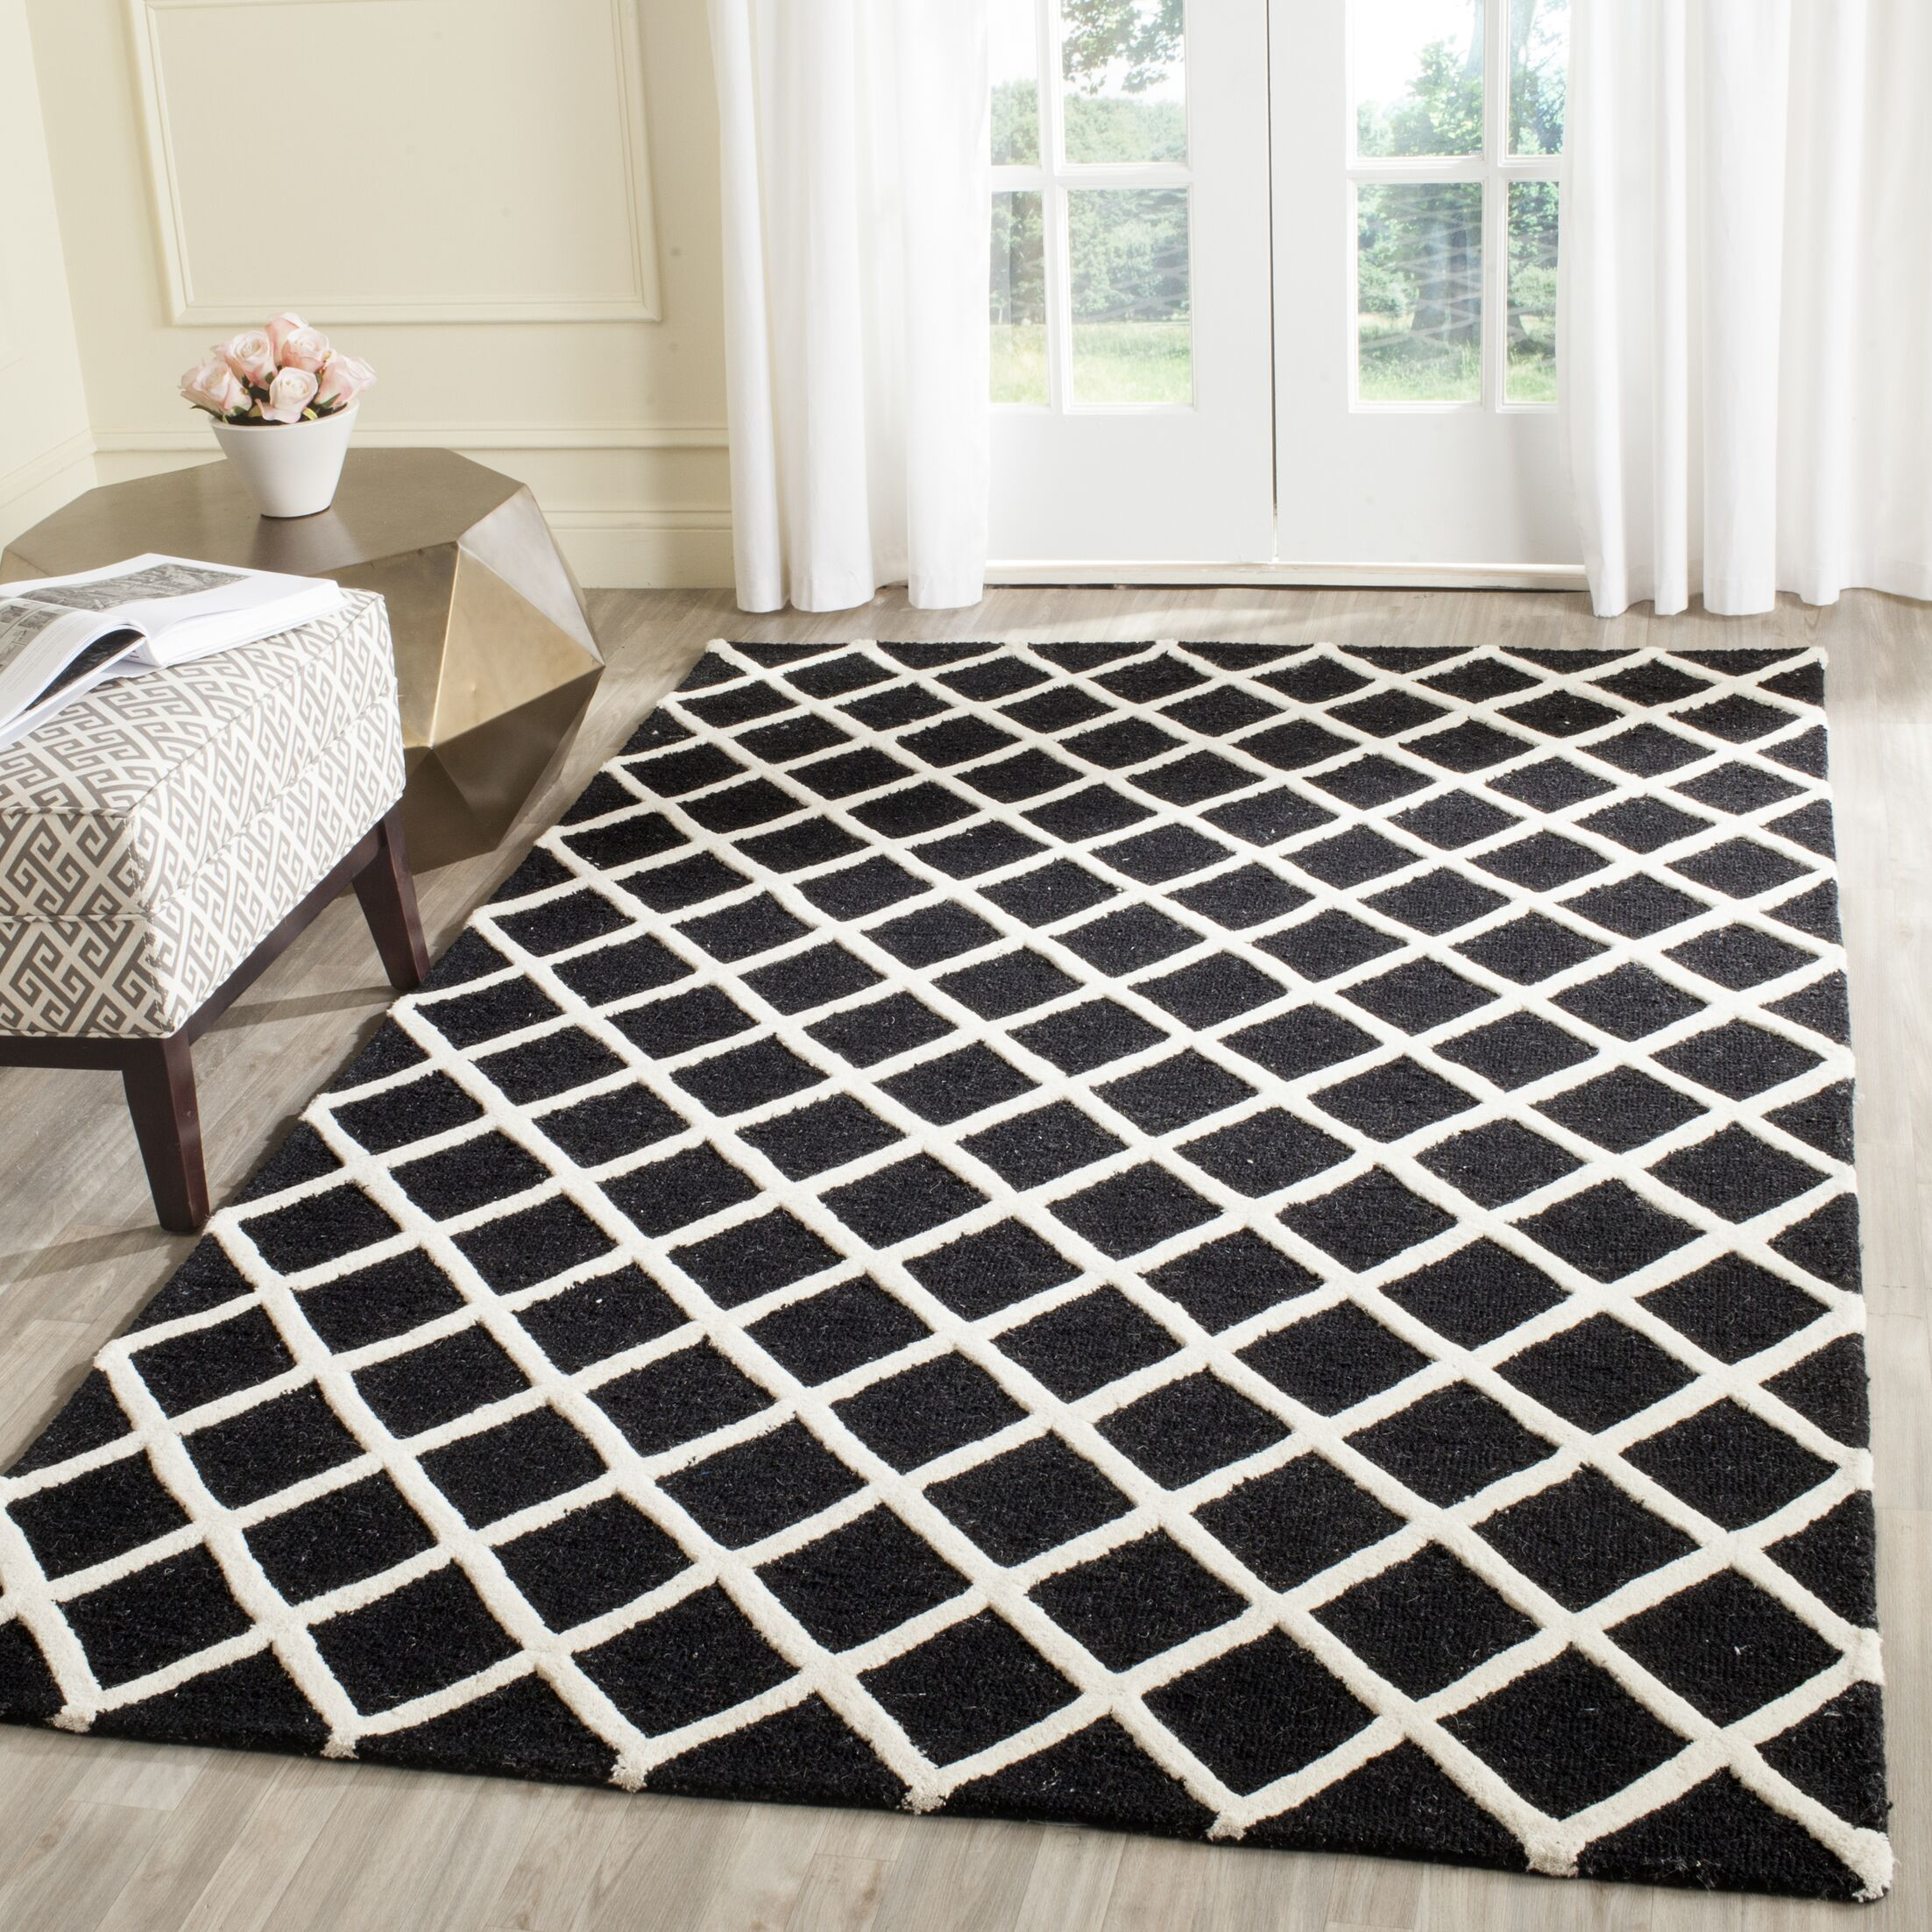 Martins Hand-Tufted Wool Black/White Area Rug Rug Size: Rectangle 3' x 5'